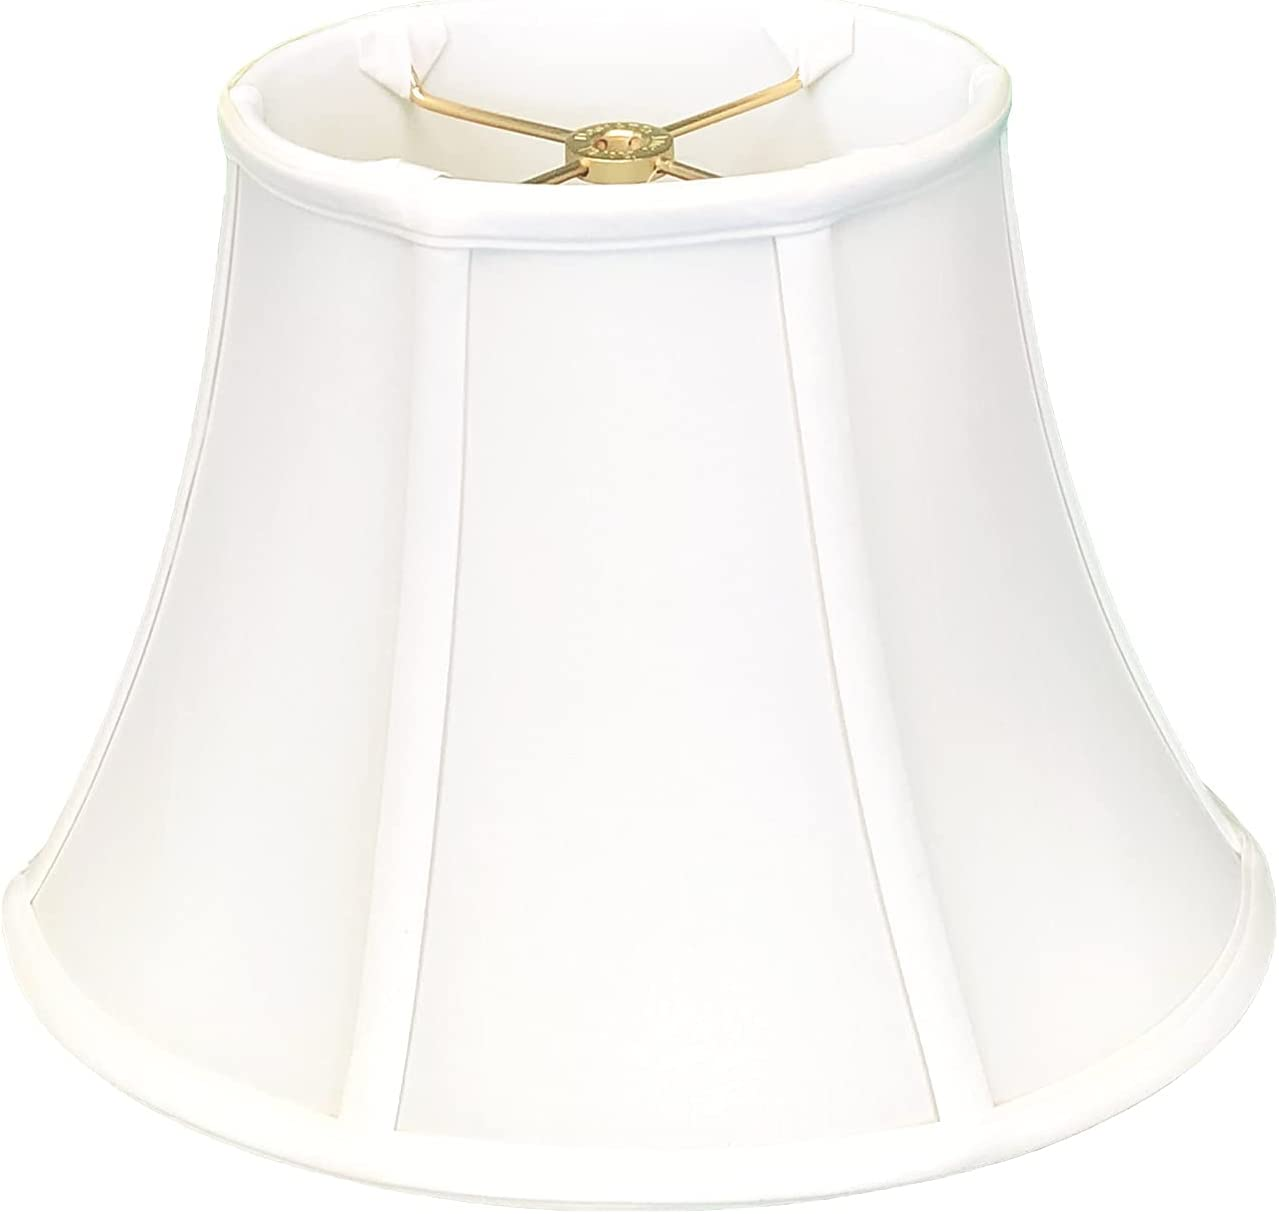 Royal Max 81% OFF Designs BS-725-16WH Oval Luxury goods Basic Lamp 6.5 Shade x 9.5